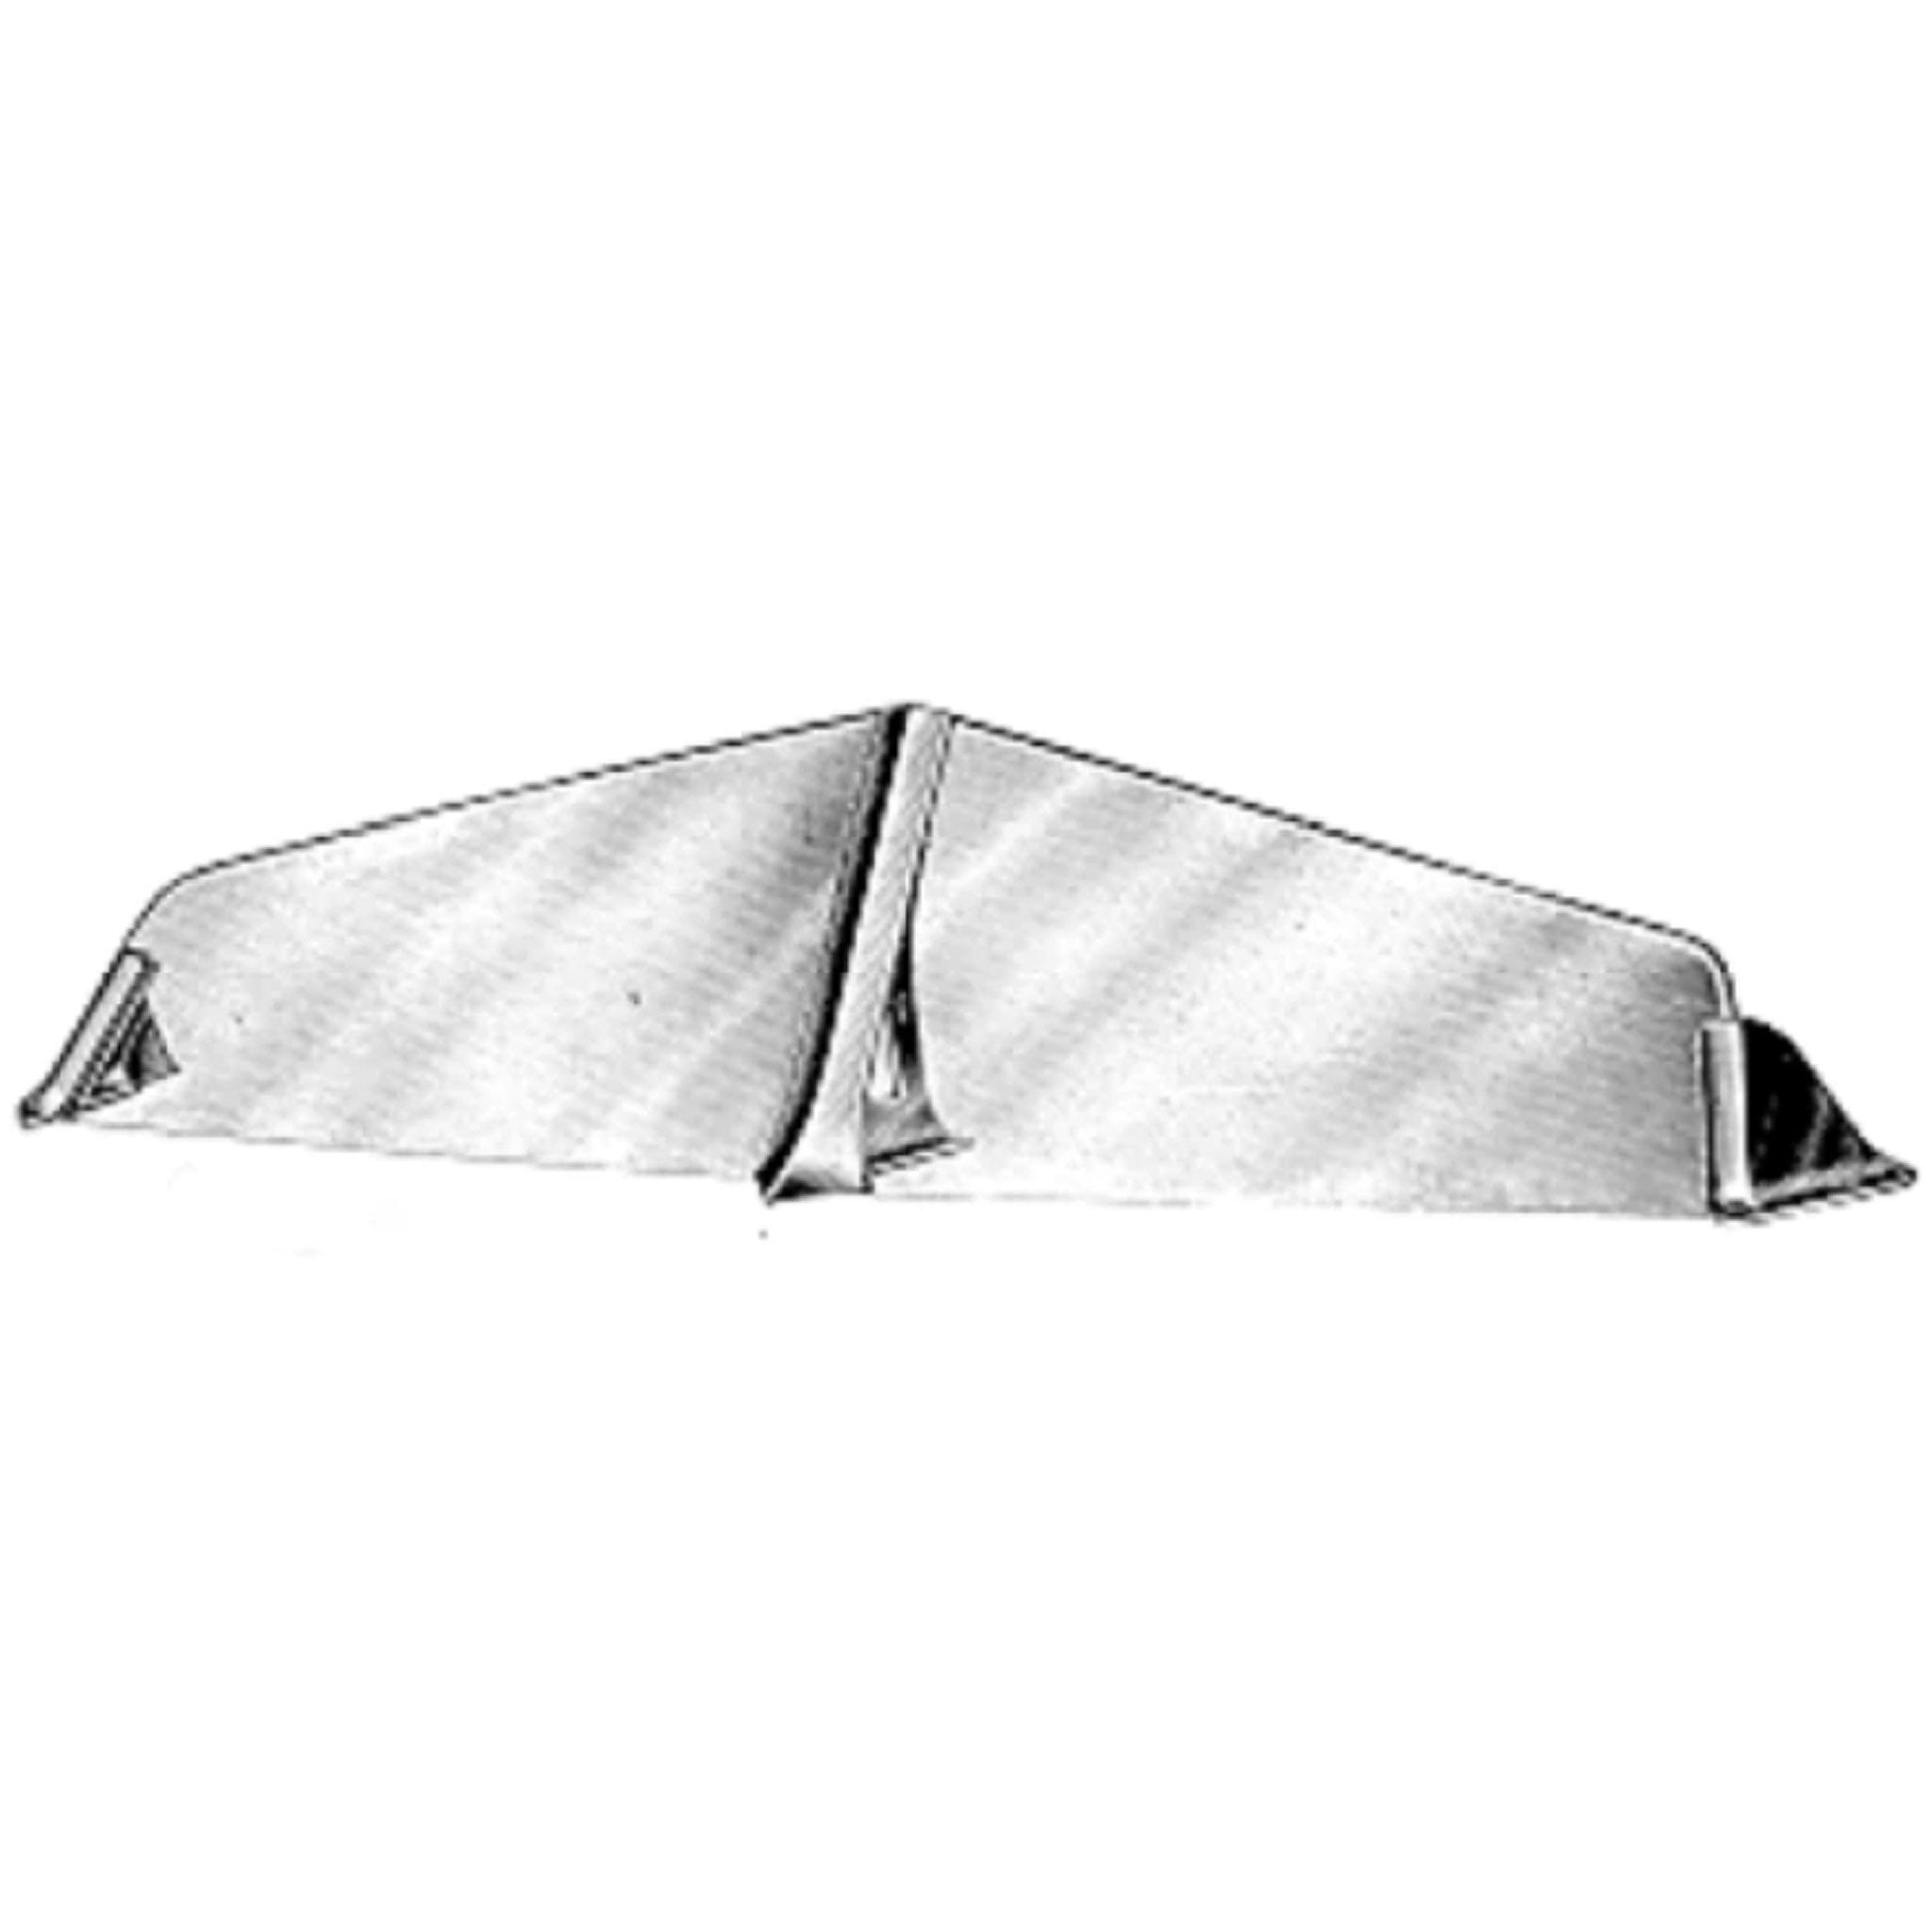 "Davey Windscreen Fittings Chrome 11 1/2"" - Arthur Beale"